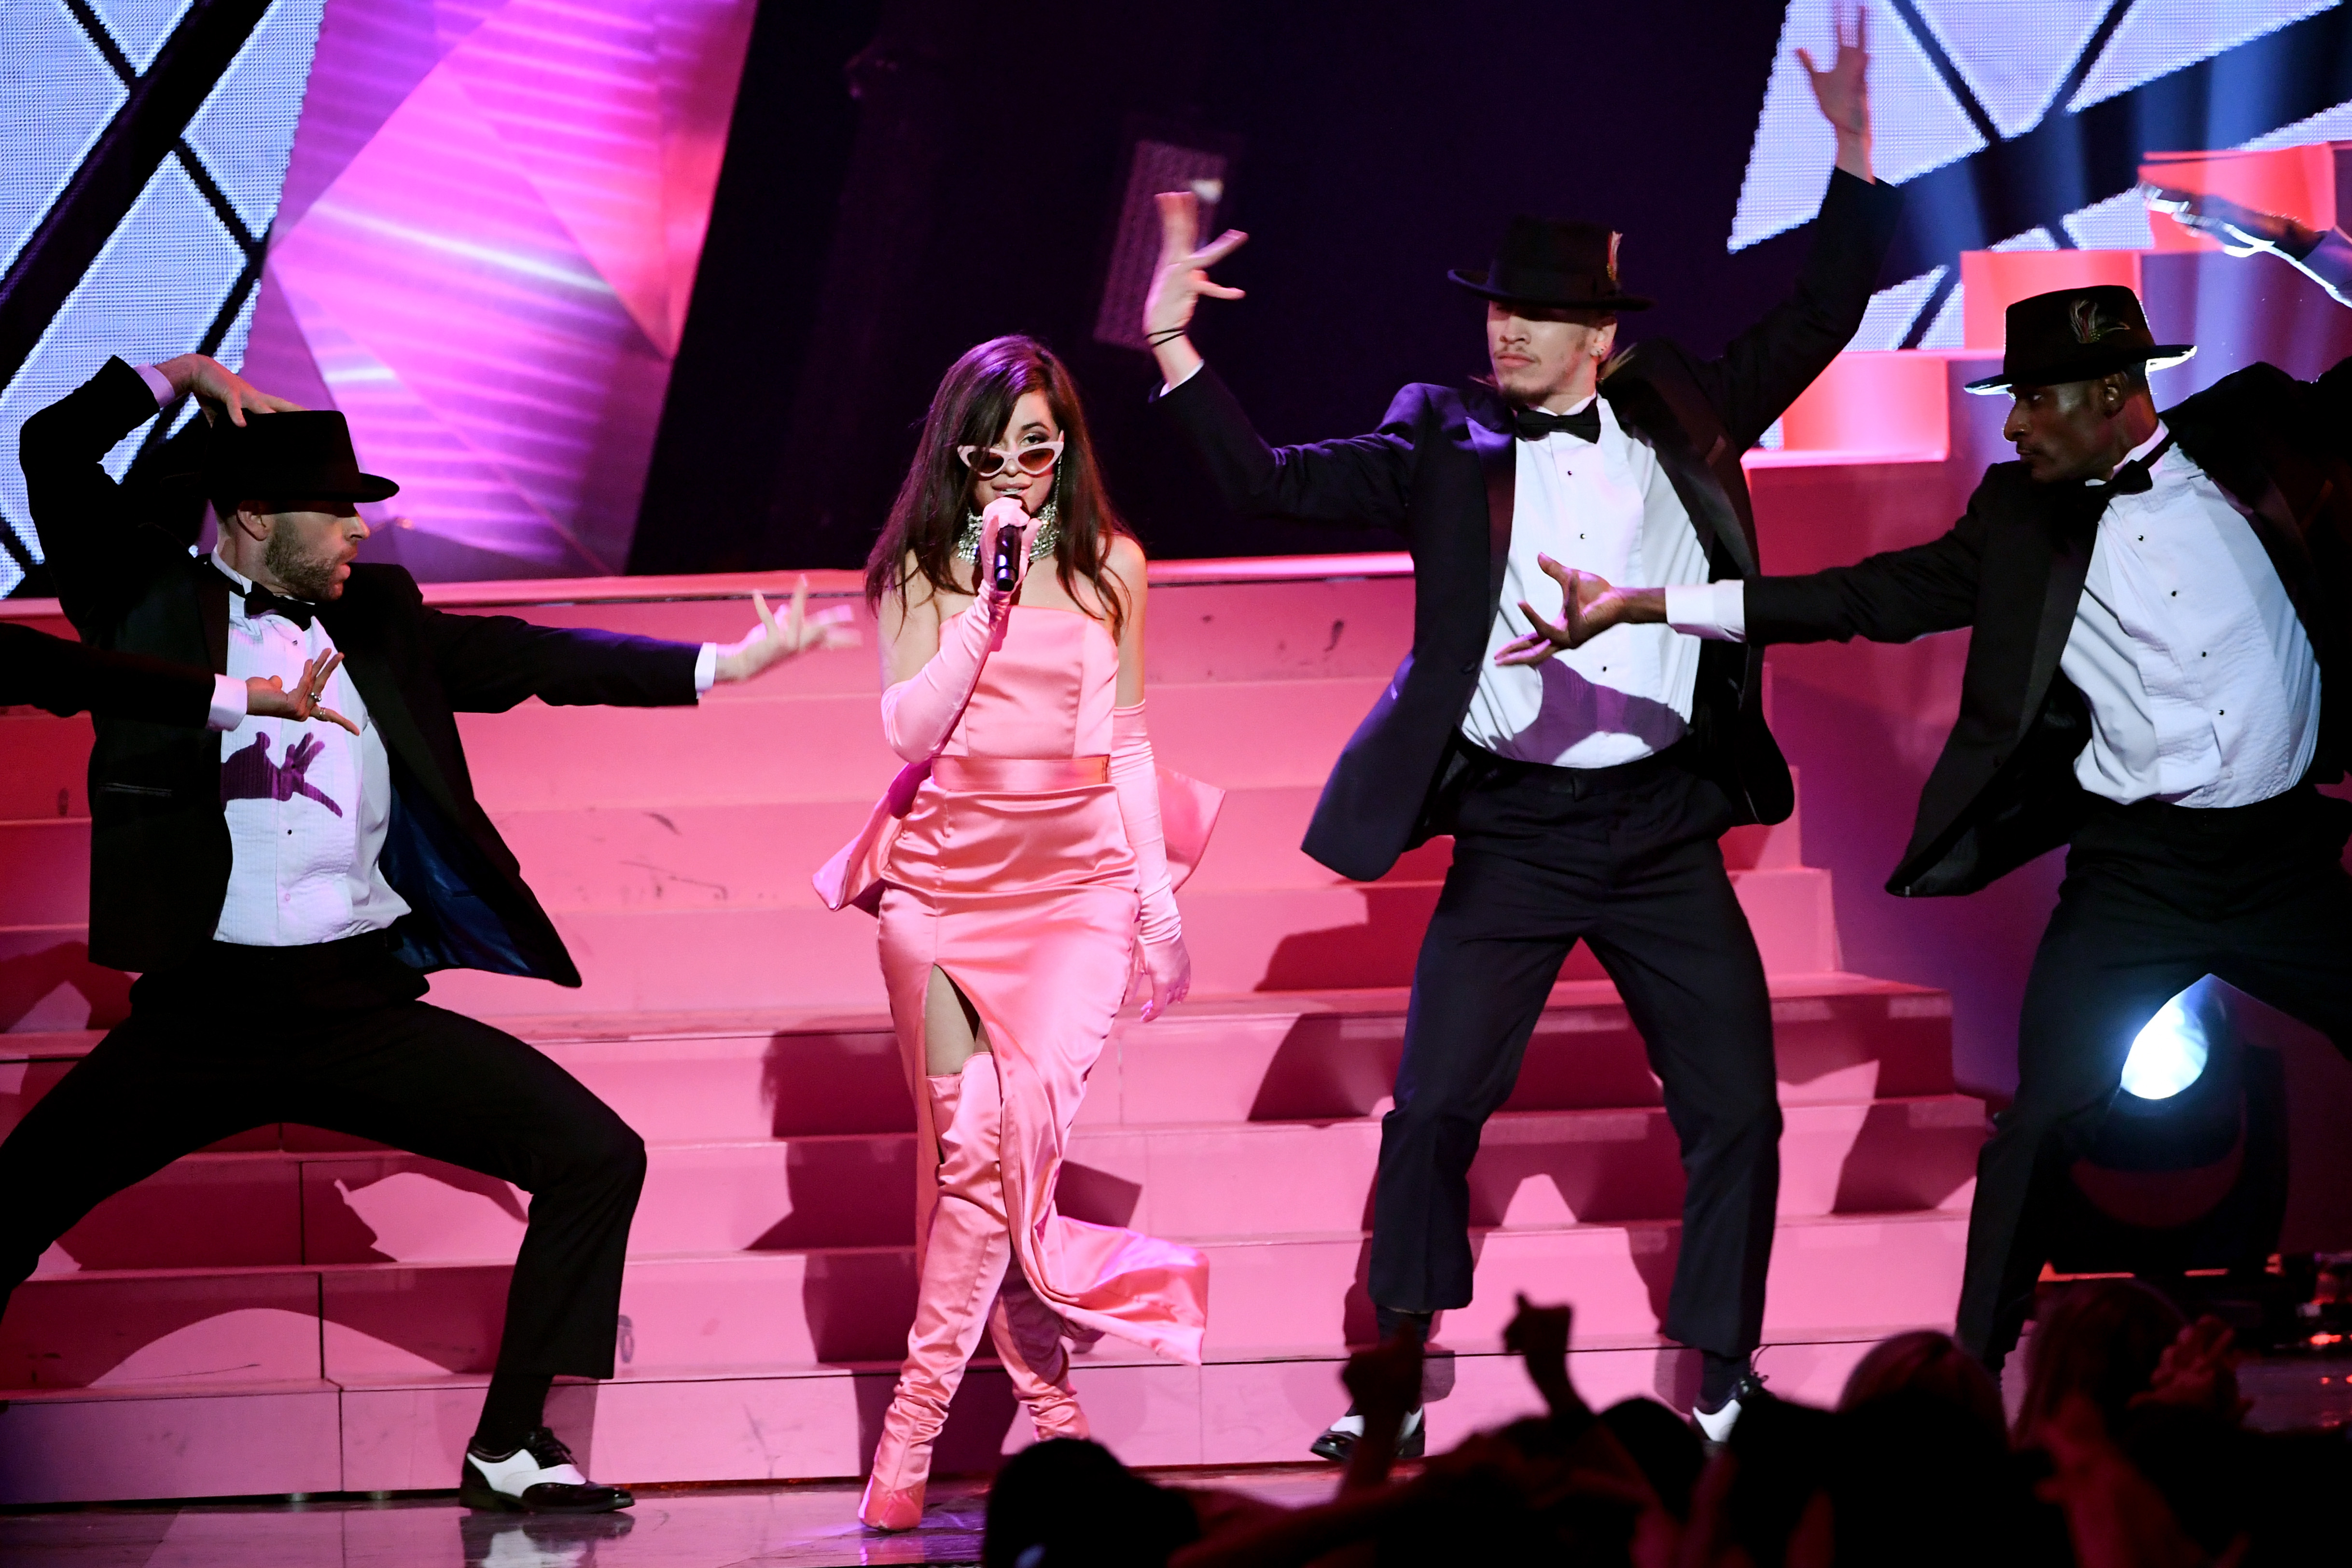 INGLEWOOD, CA - MARCH 11:  Camila Cabello performs onstage during the 2018 iHeartRadio Music Awards which broadcasted live on TBS, TNT, and truTV at The Forum on March 11, 2018 in Inglewood, California.  (Photo by Kevin Winter/Getty Images for iHeartMedia)